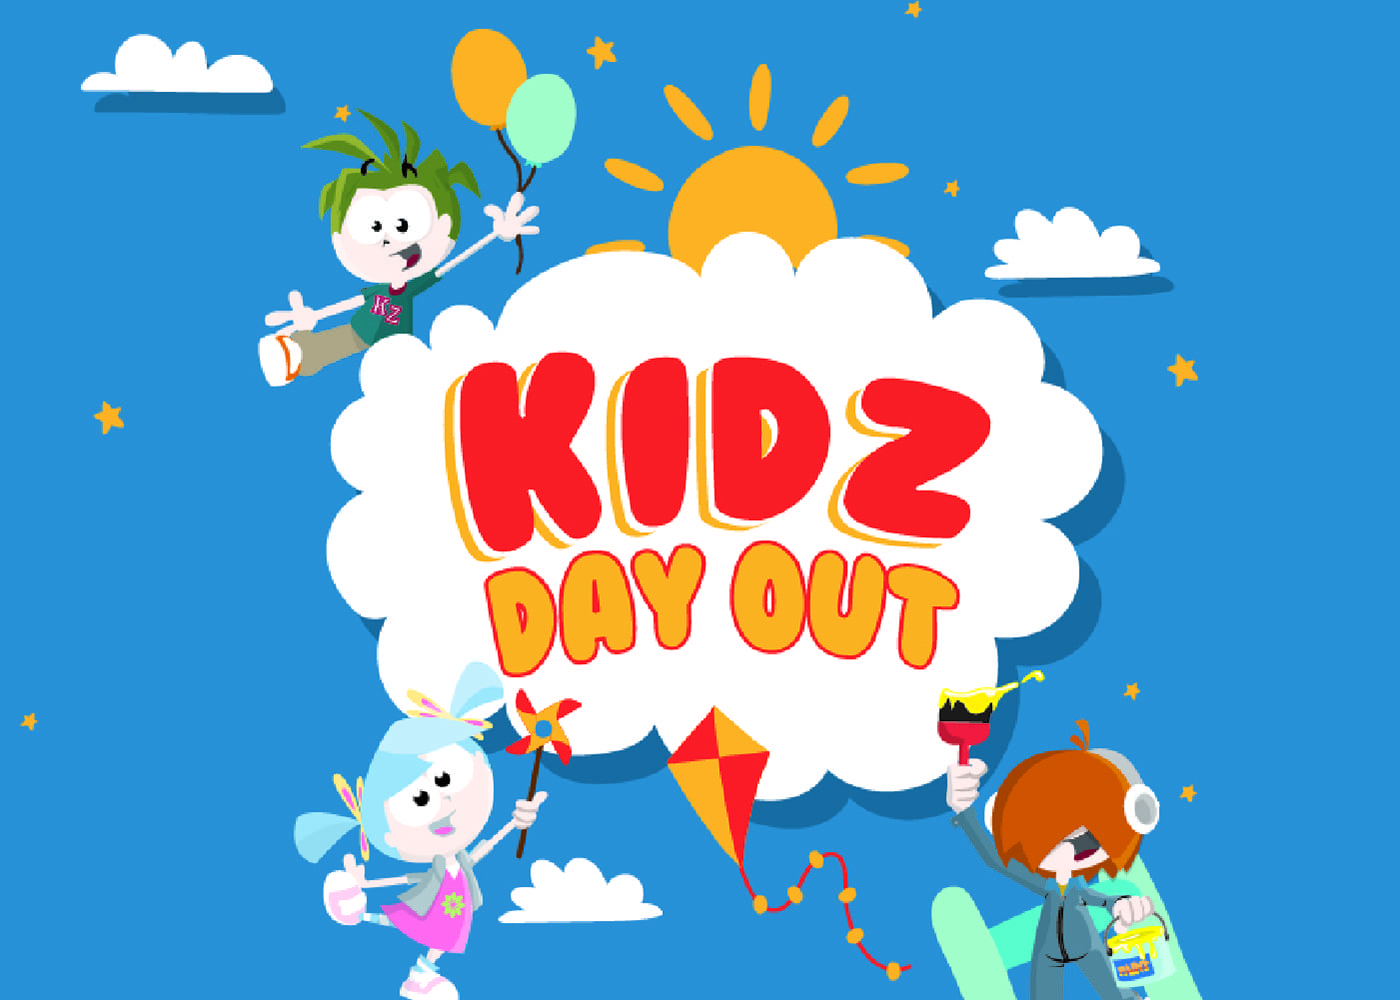 Be a part of KidZania's Kidz Day Out